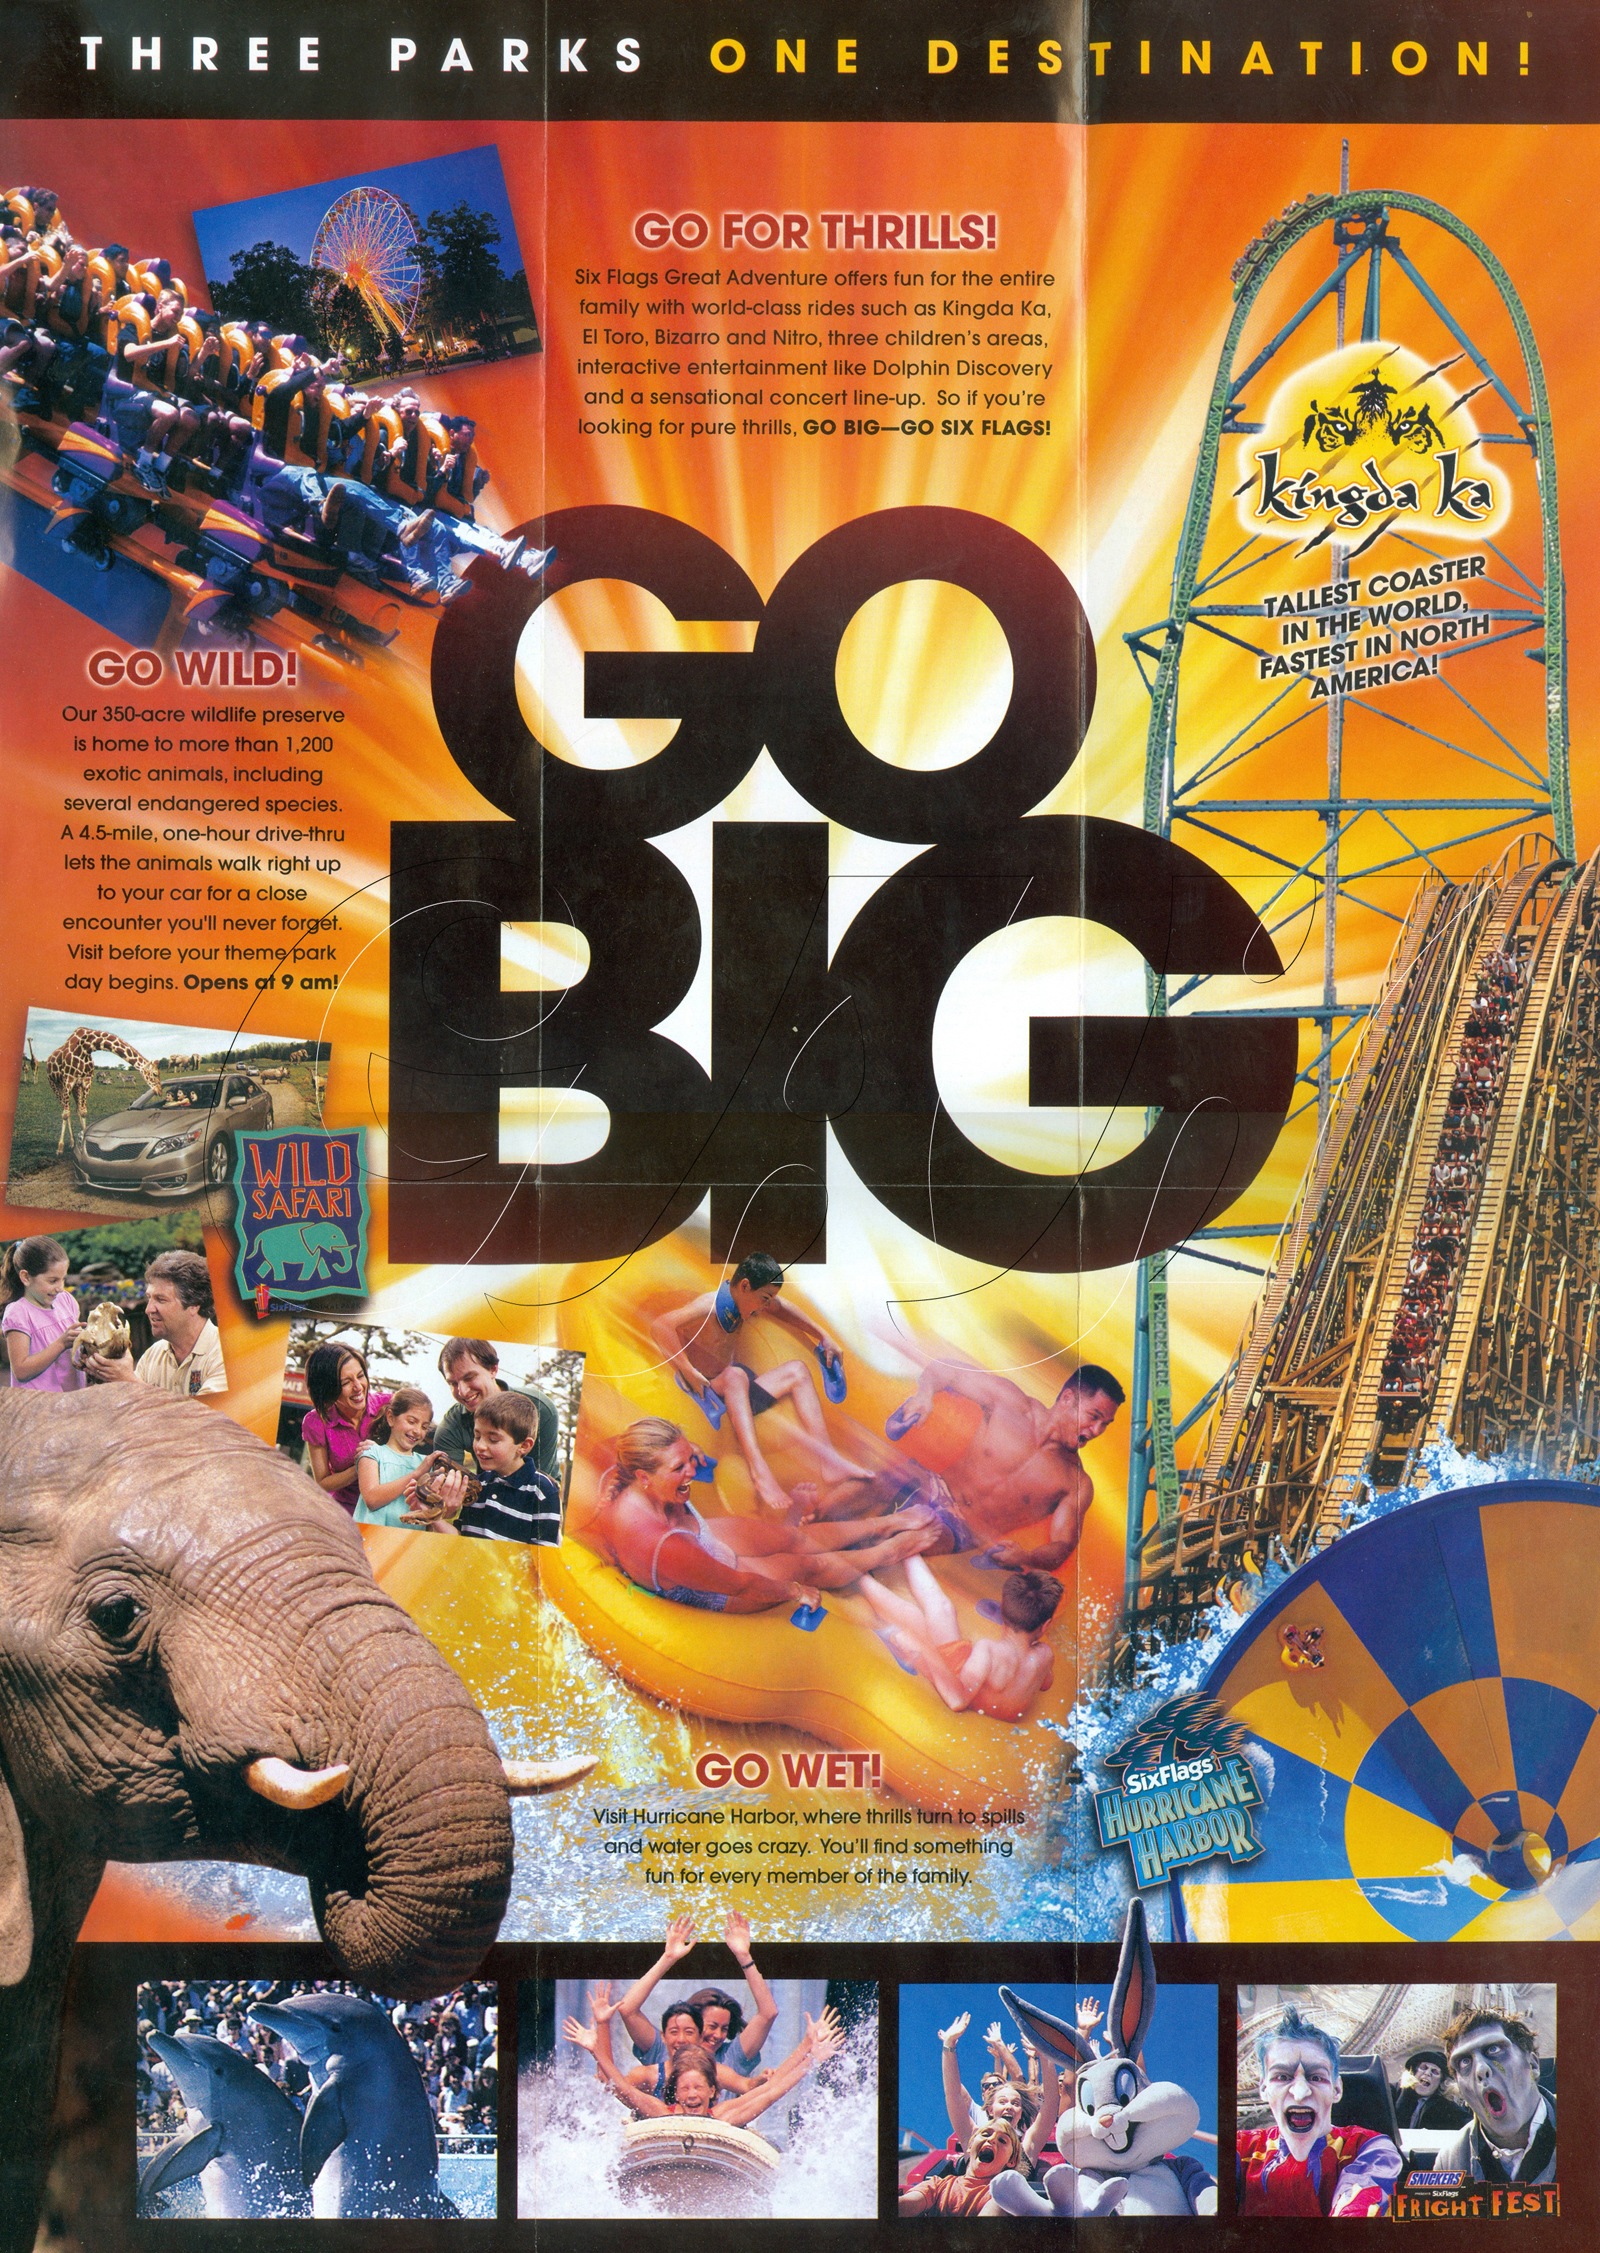 Six flags great adventure 2011 general brochure Go to the website